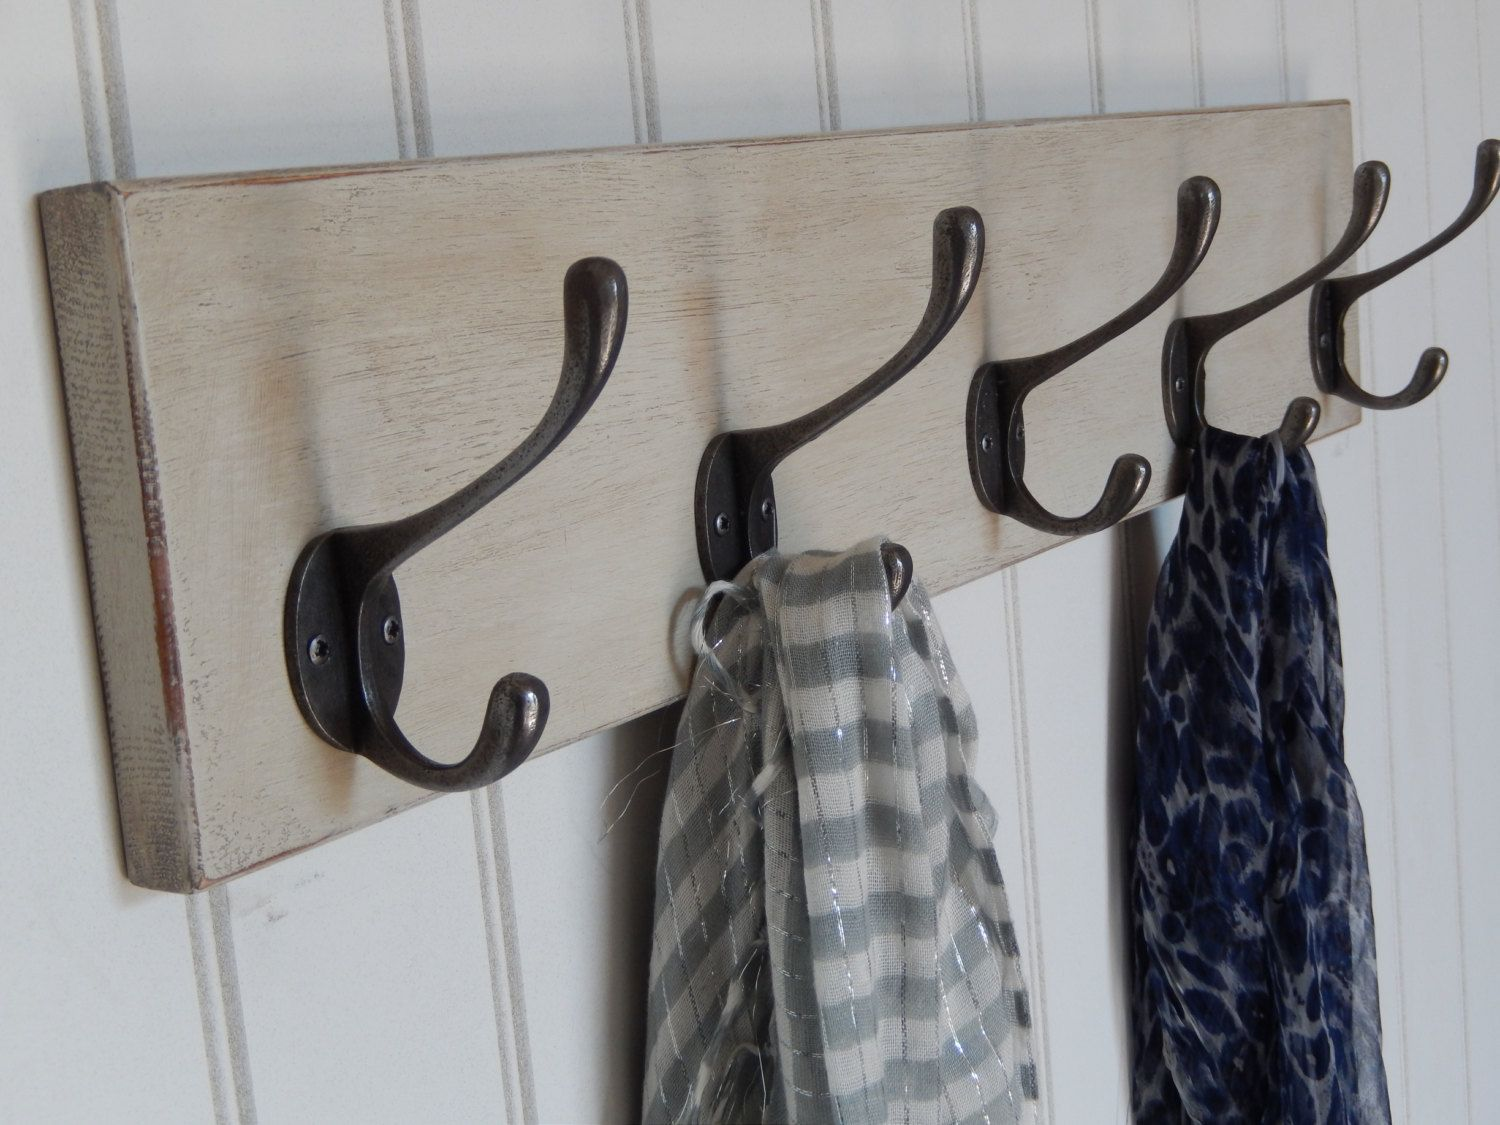 Rustic Old White Painted Coat Rack With Victorian Style Antique Iron Hooks Entrance Hallway Vintage Style Shabby Chic Clothing Rack Shabby Chic Coat Rack Shabby Chic Coat Hooks Shabby Chic